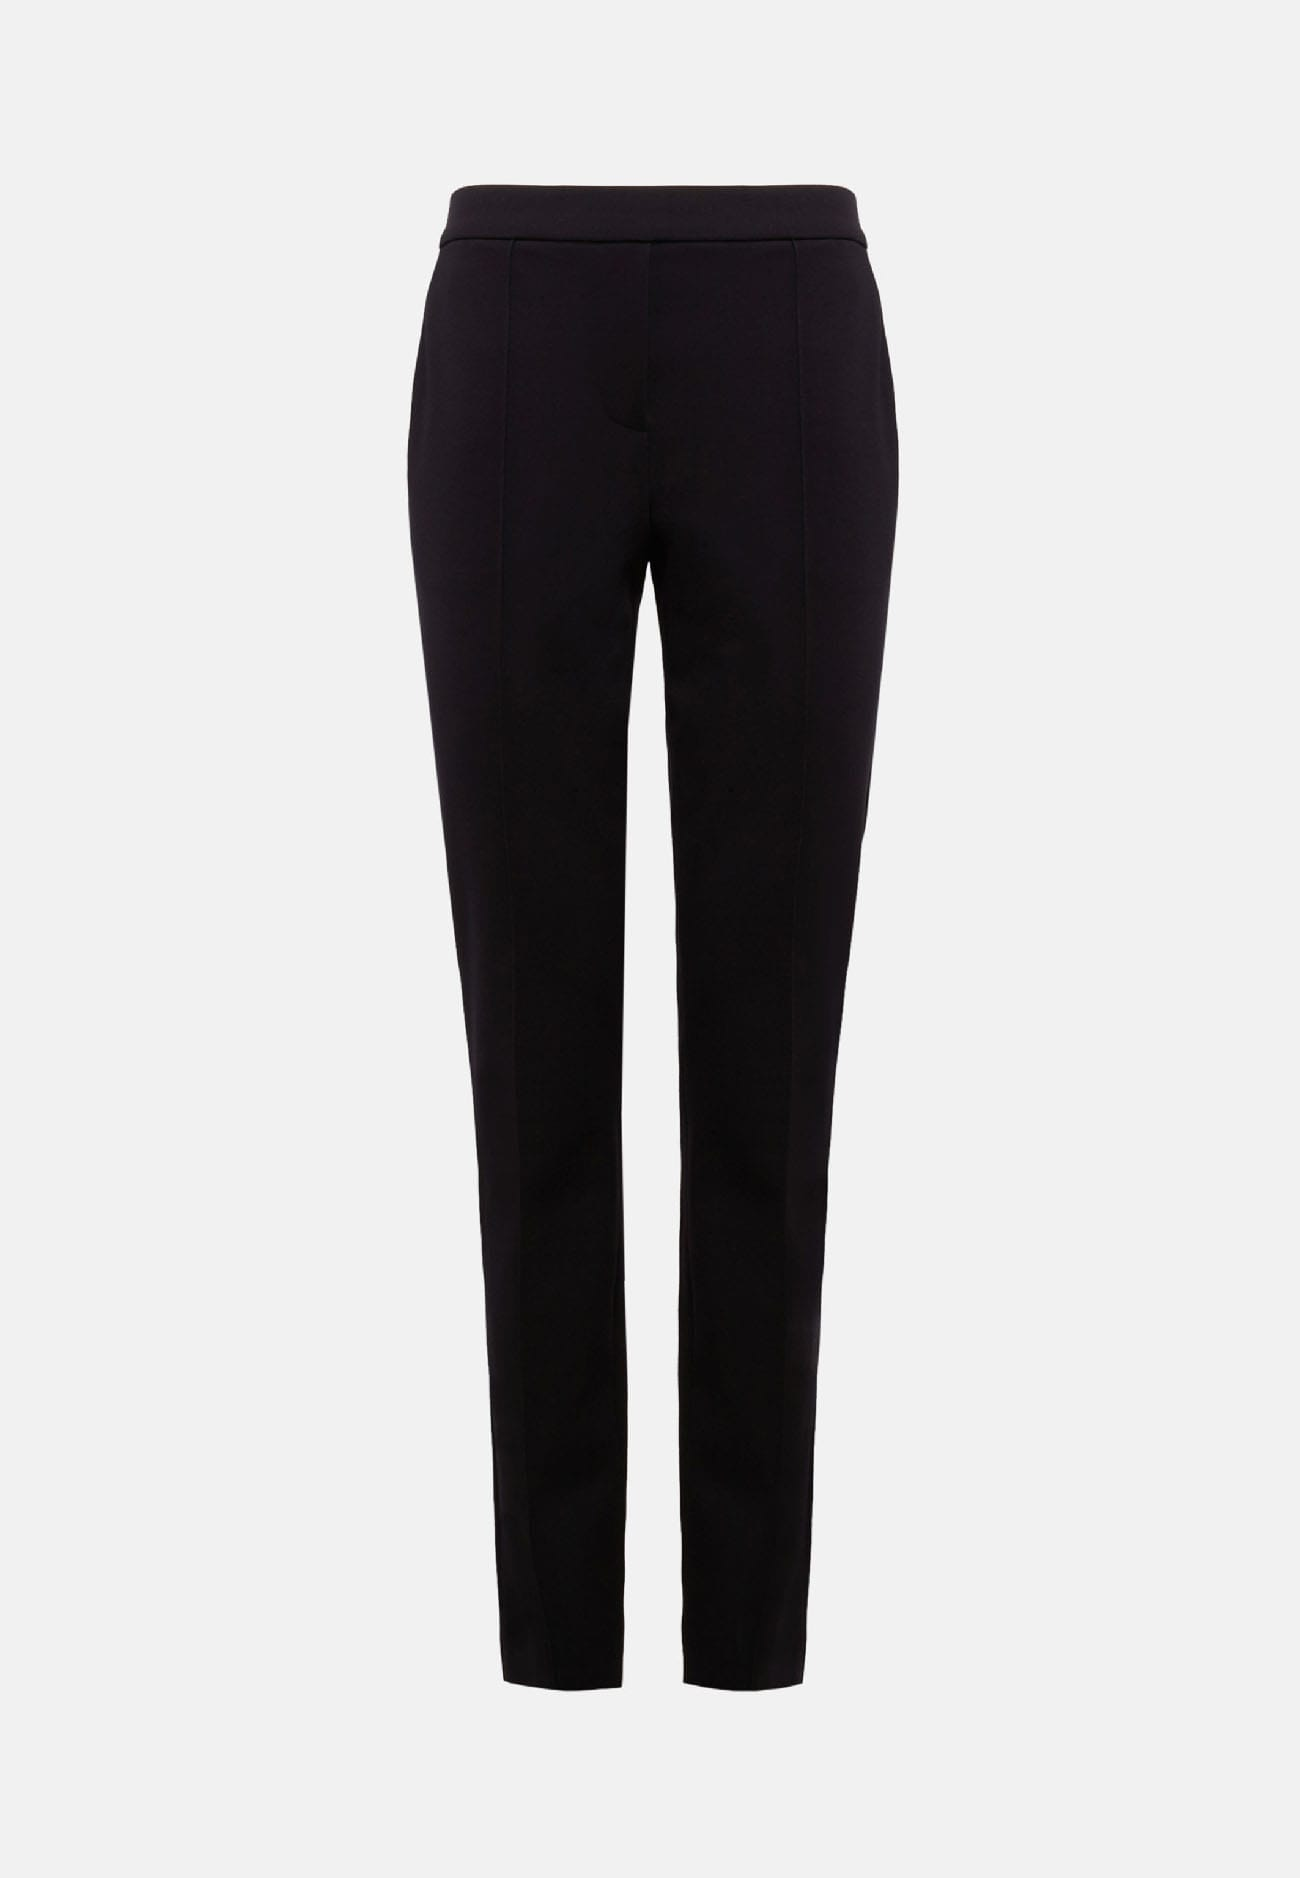 52554 Baily Trousers